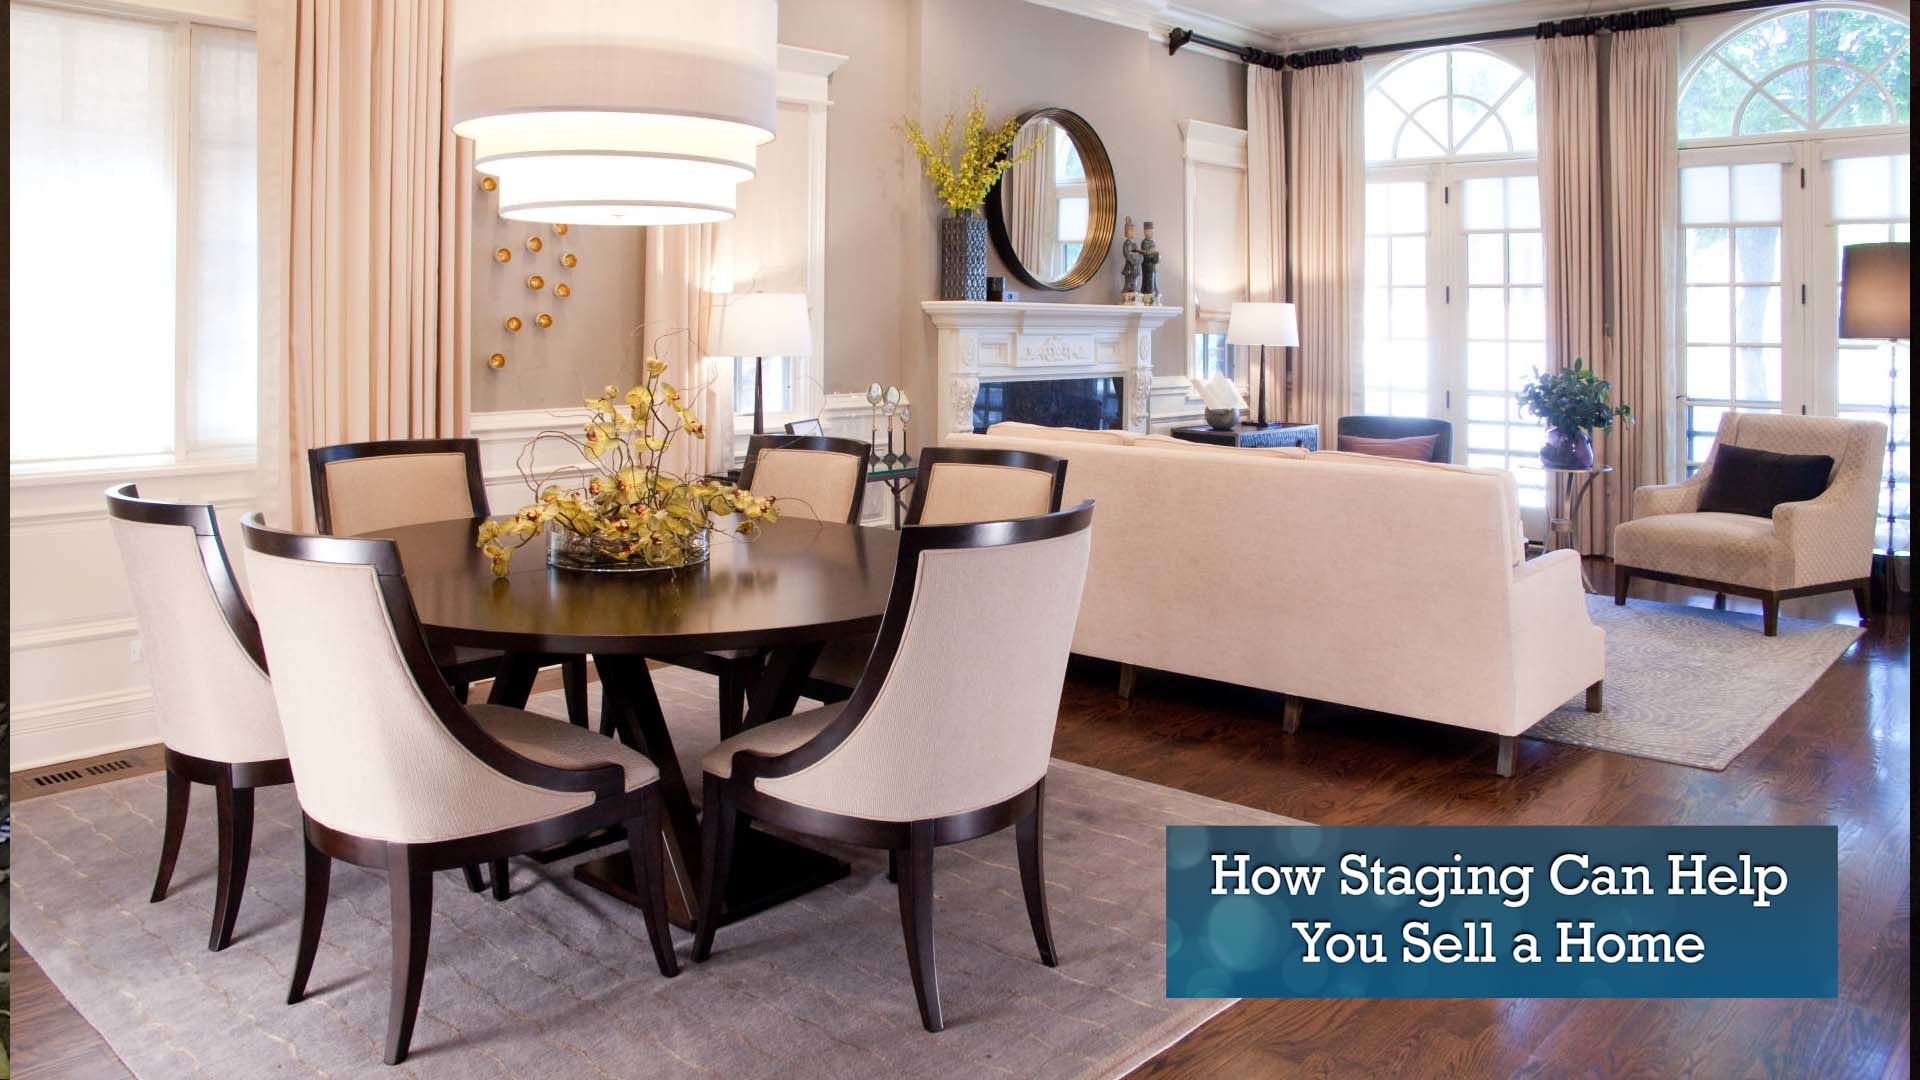 Staging: More Money, Fewer Days on Market